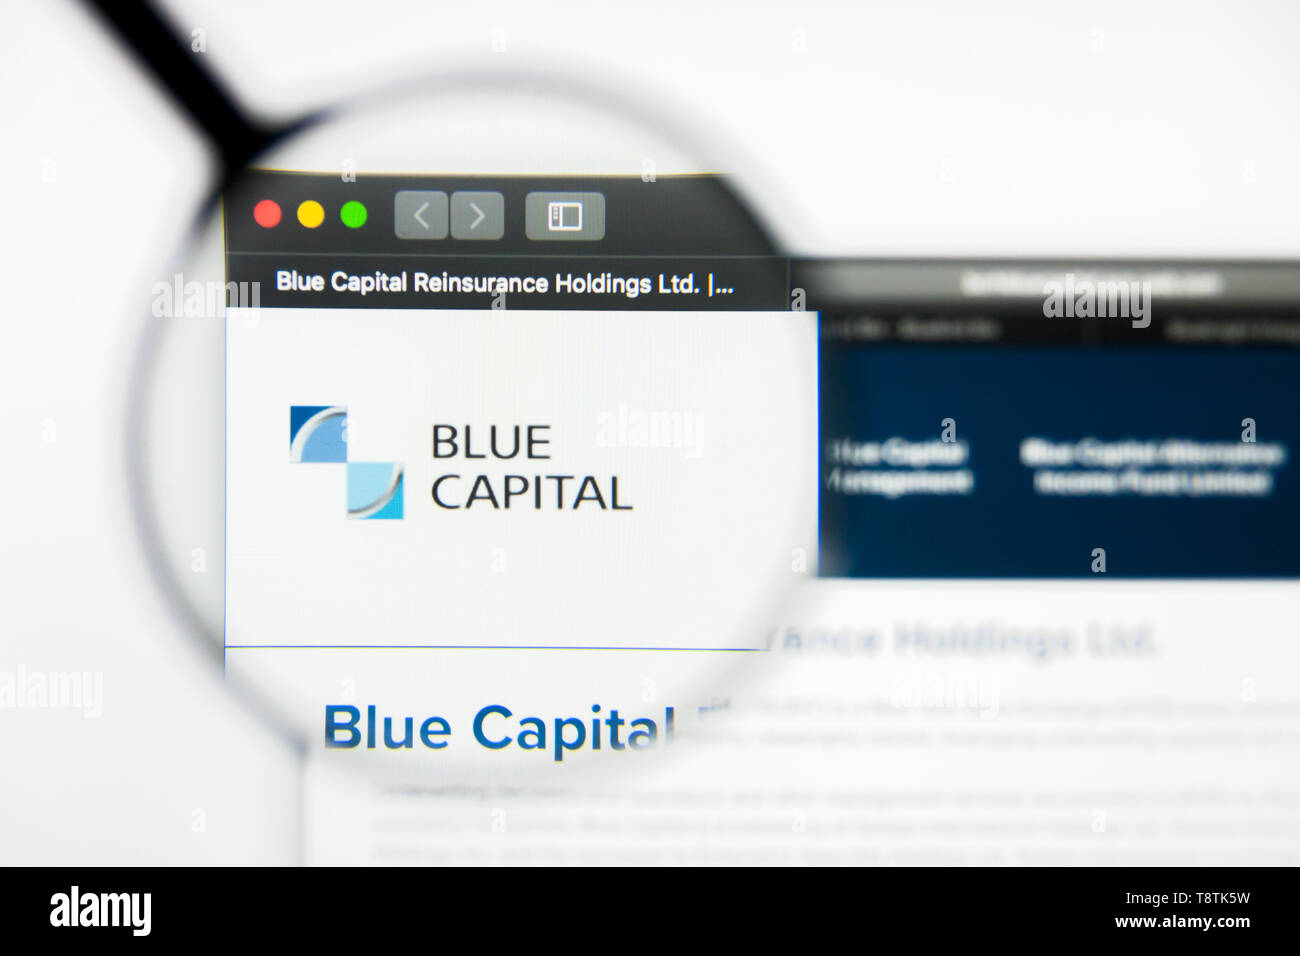 Richmond, Virginia, USA - 9 May 2019: Illustrative Editorial of Blue Capital Reinsurance Holdings LTD website homepage. Blue Capital Reinsurance Holdi - Stock Image